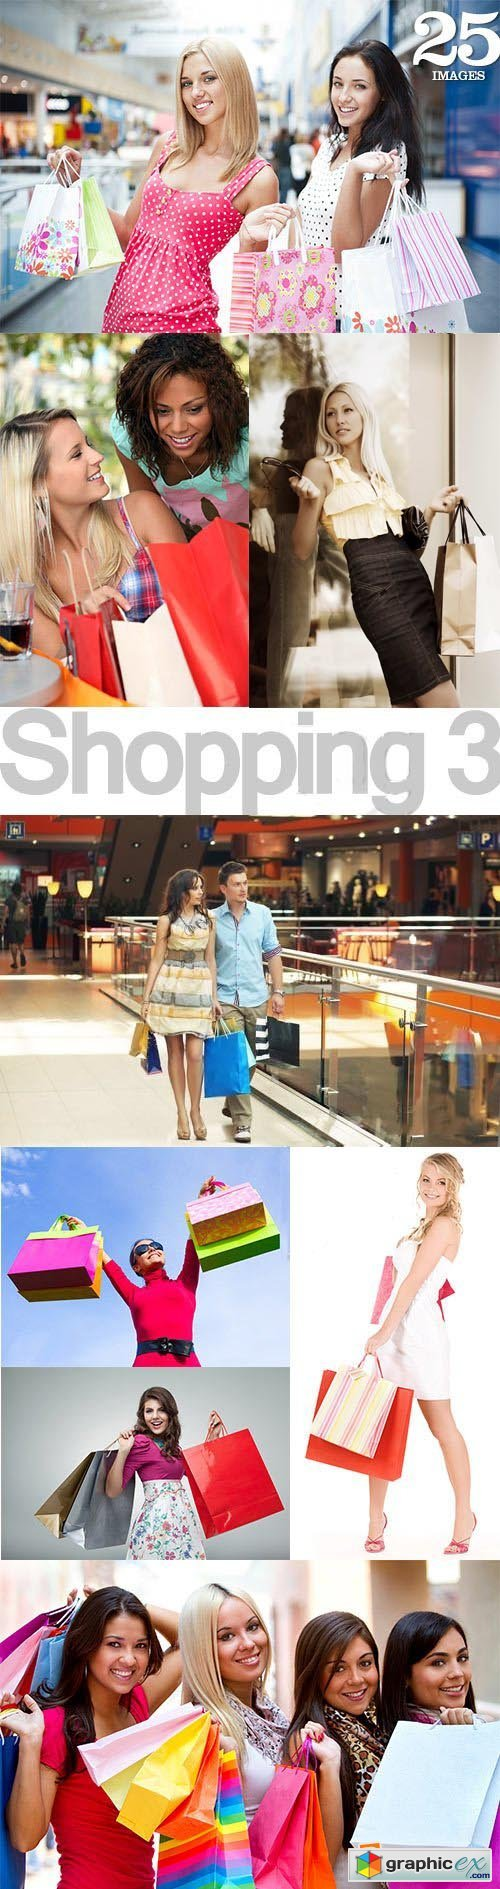 Shopping Collection 3, 25xJPG